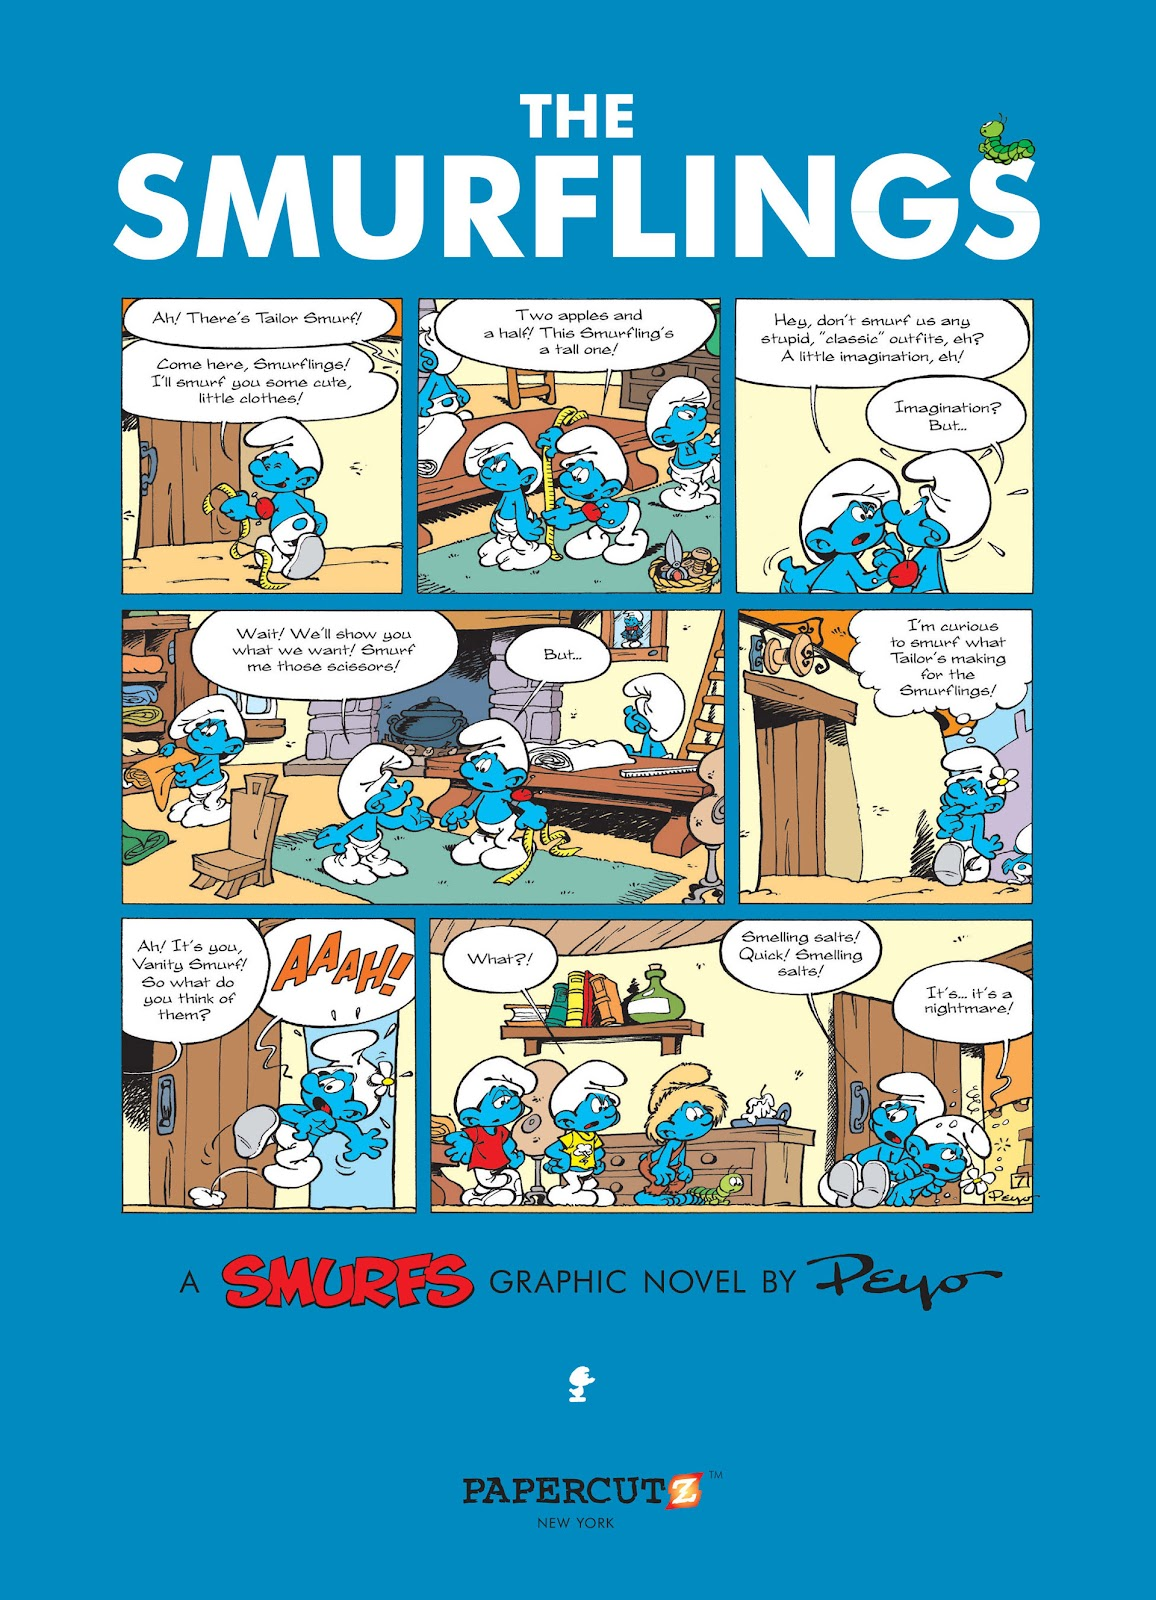 Read online The Smurfs comic -  Issue #15 - 4